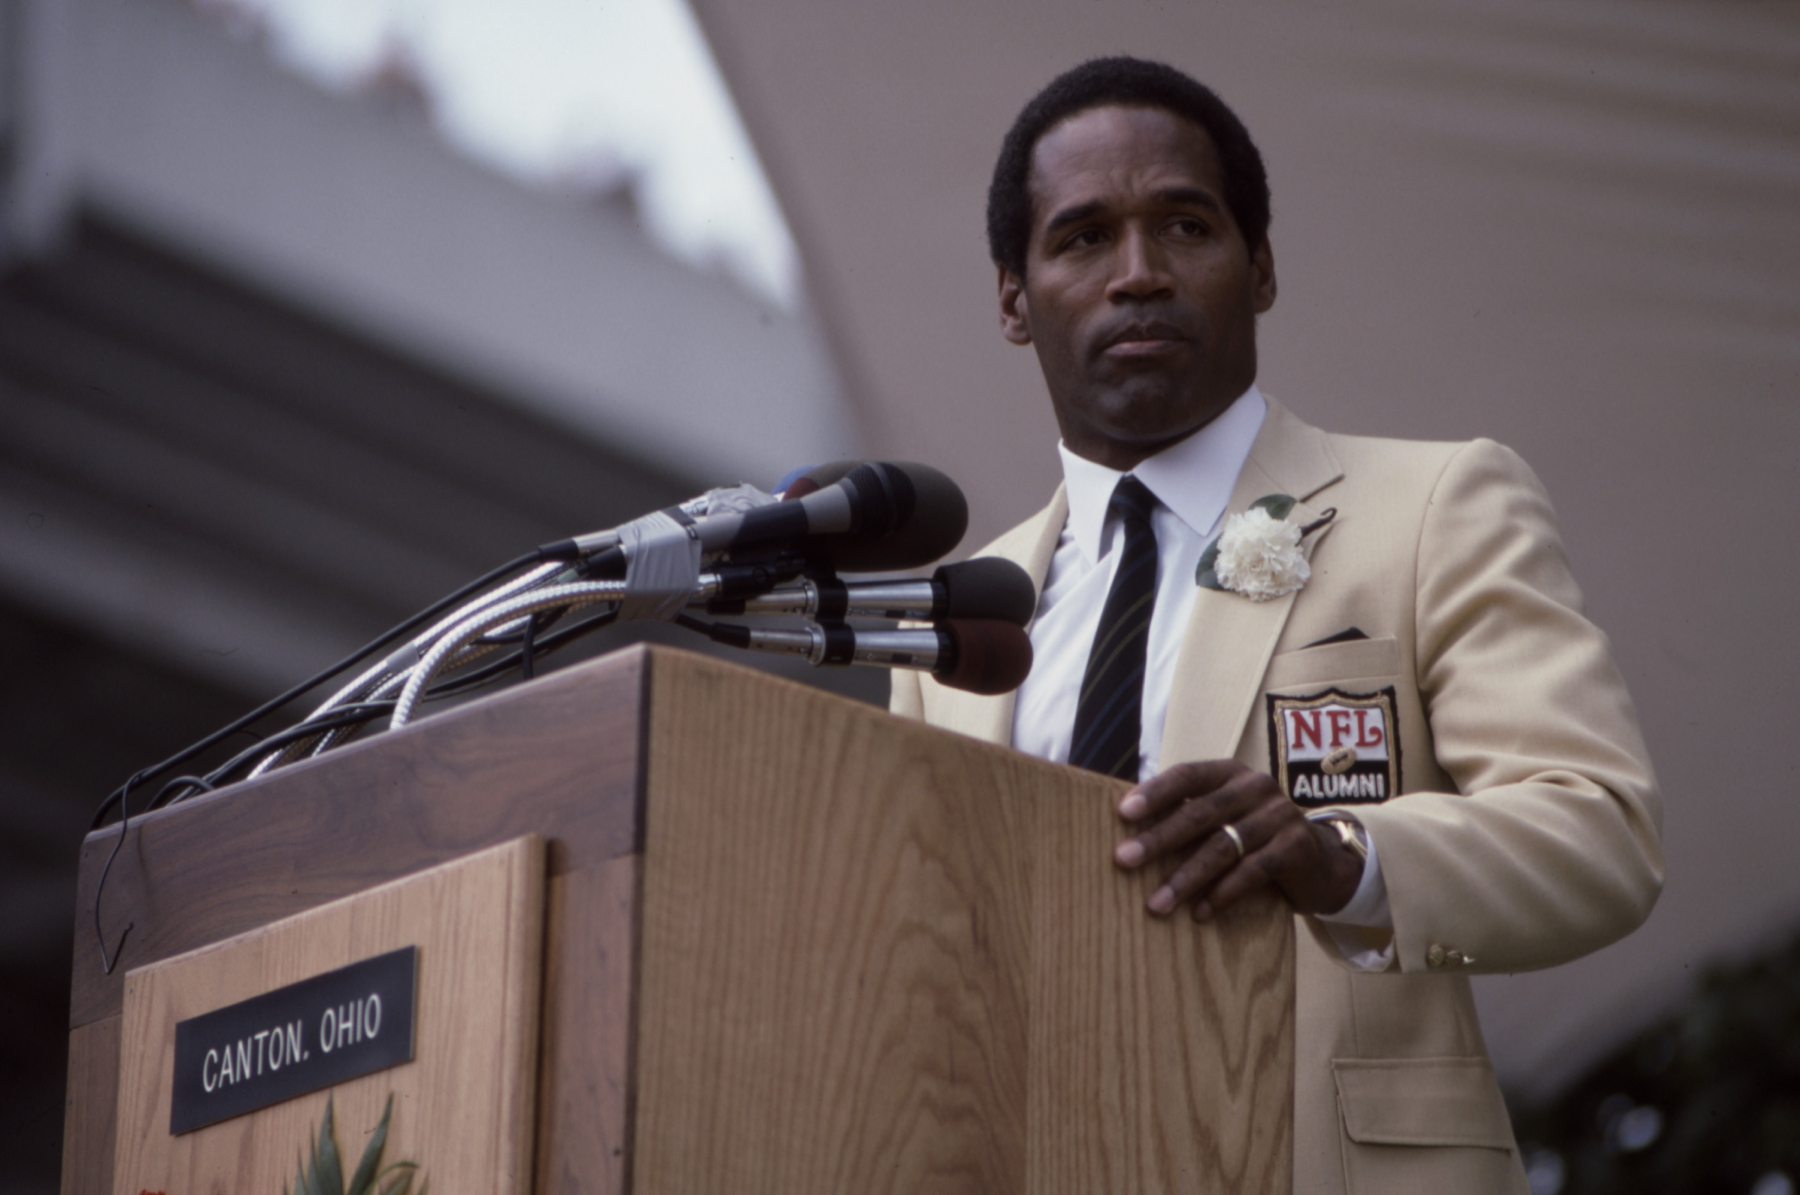 O.J. Simpson just celebrated his 73rd birthday. On his birthday, Simpson revealed who his four favorite athletes of all-time are.